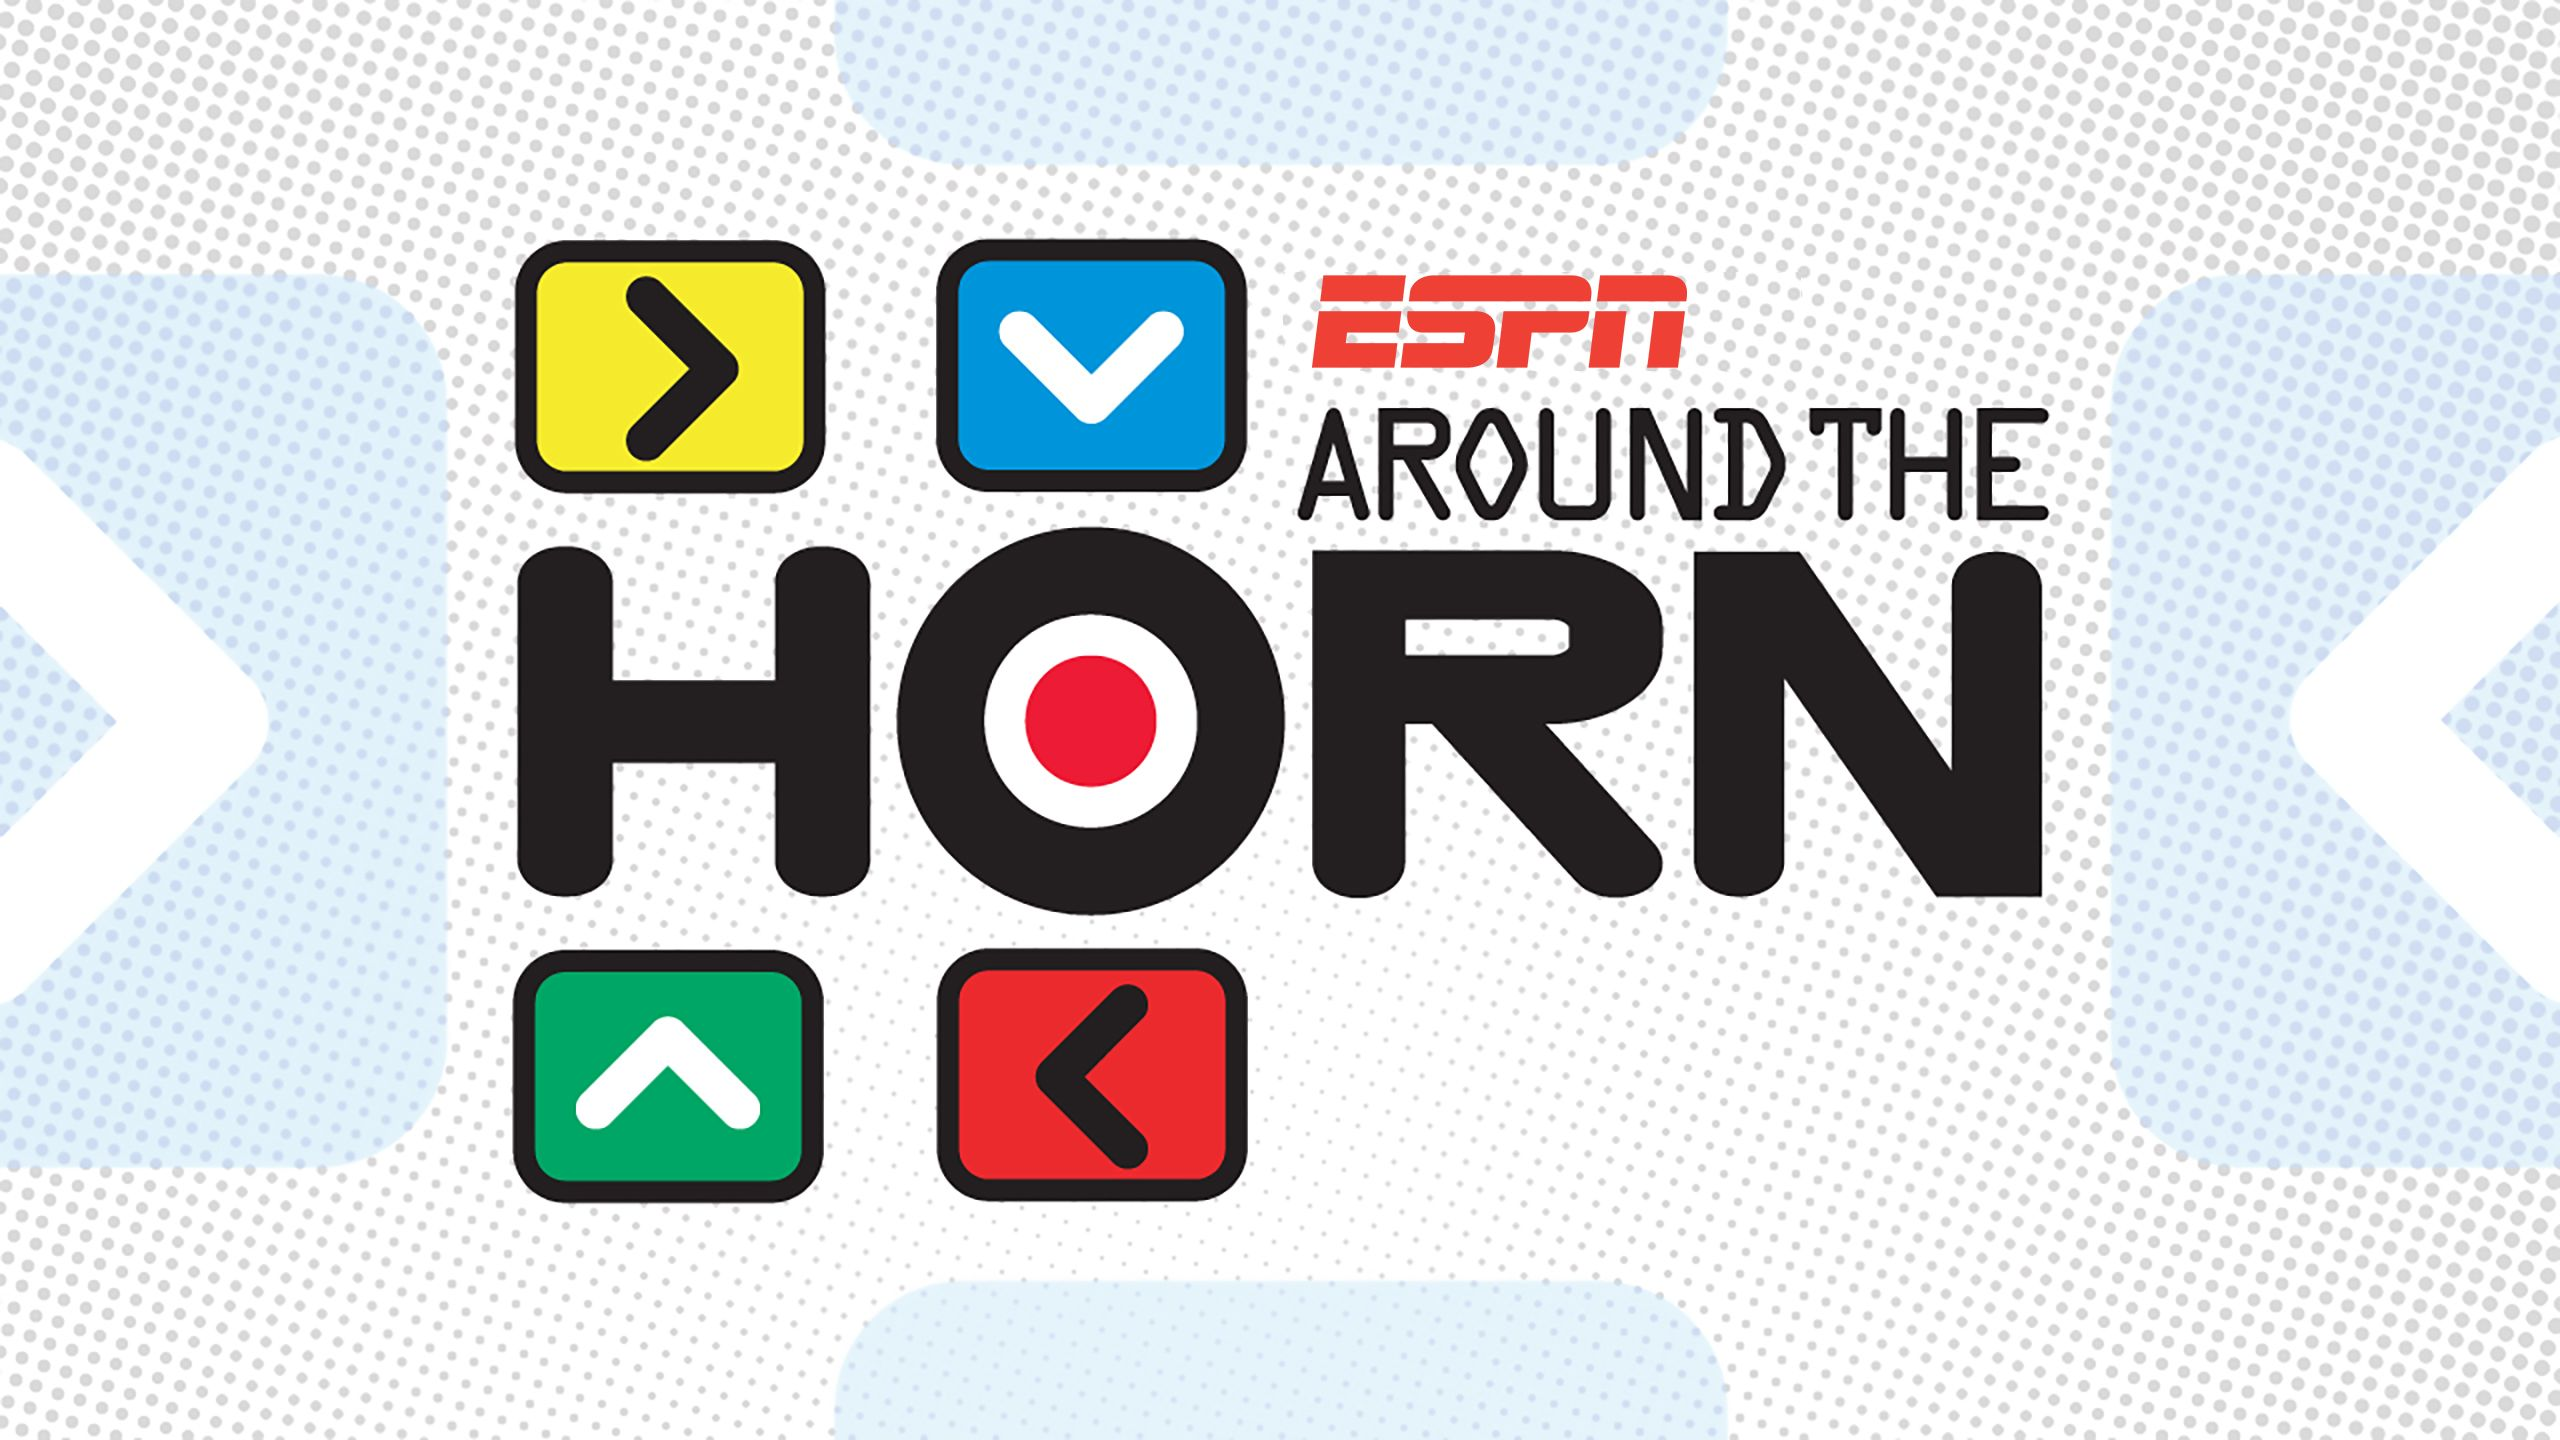 Thu, 5/24 - Around The Horn